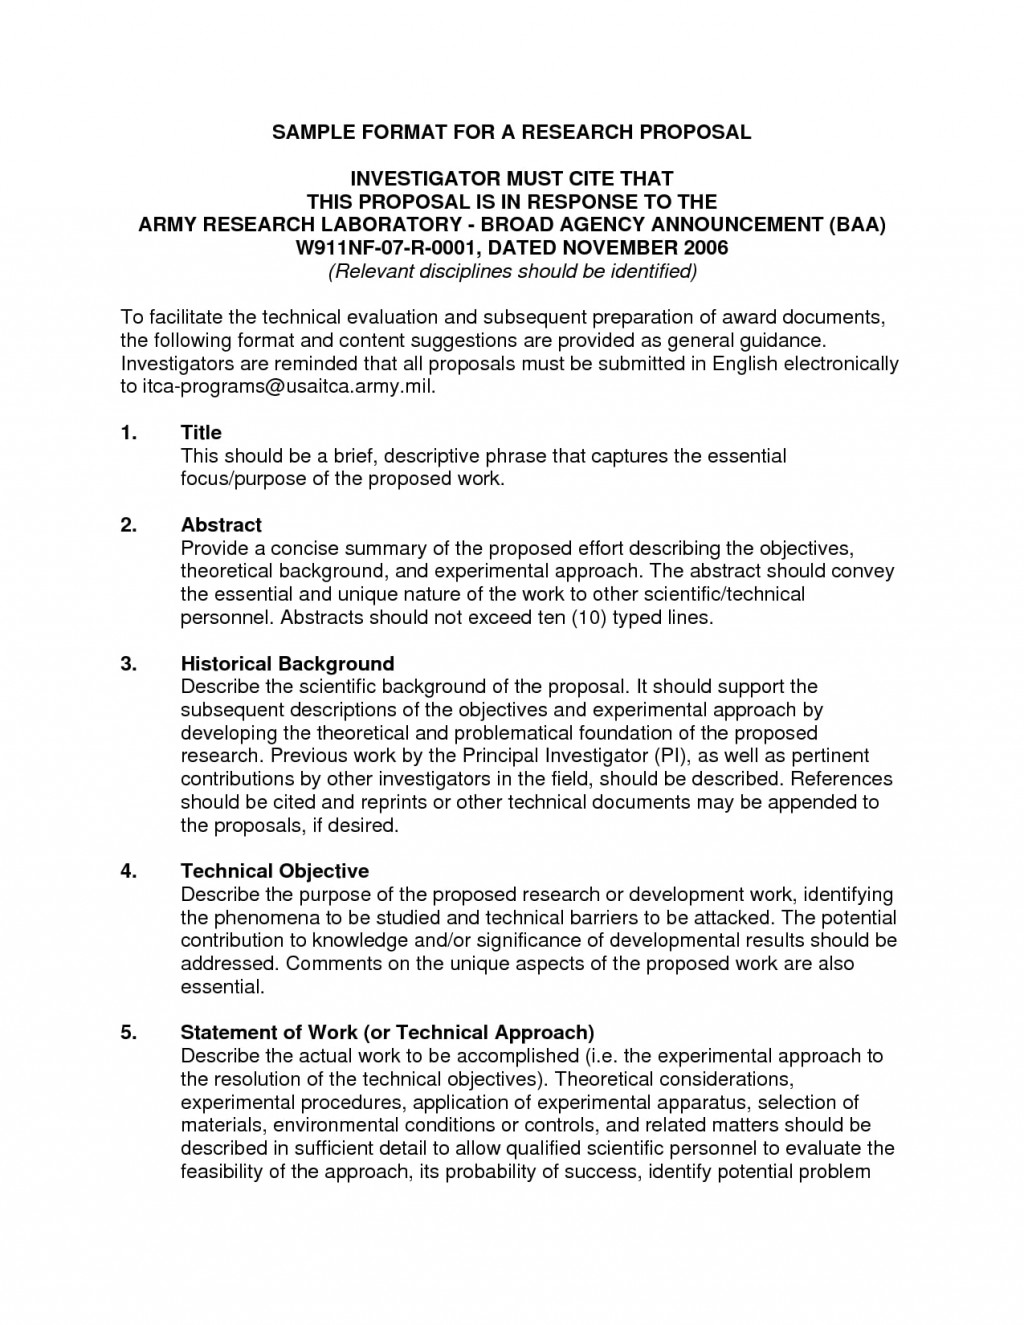 007 Proposal Research Paper Sample 6781019586 Action Astounding Pdf Mla In Education Large